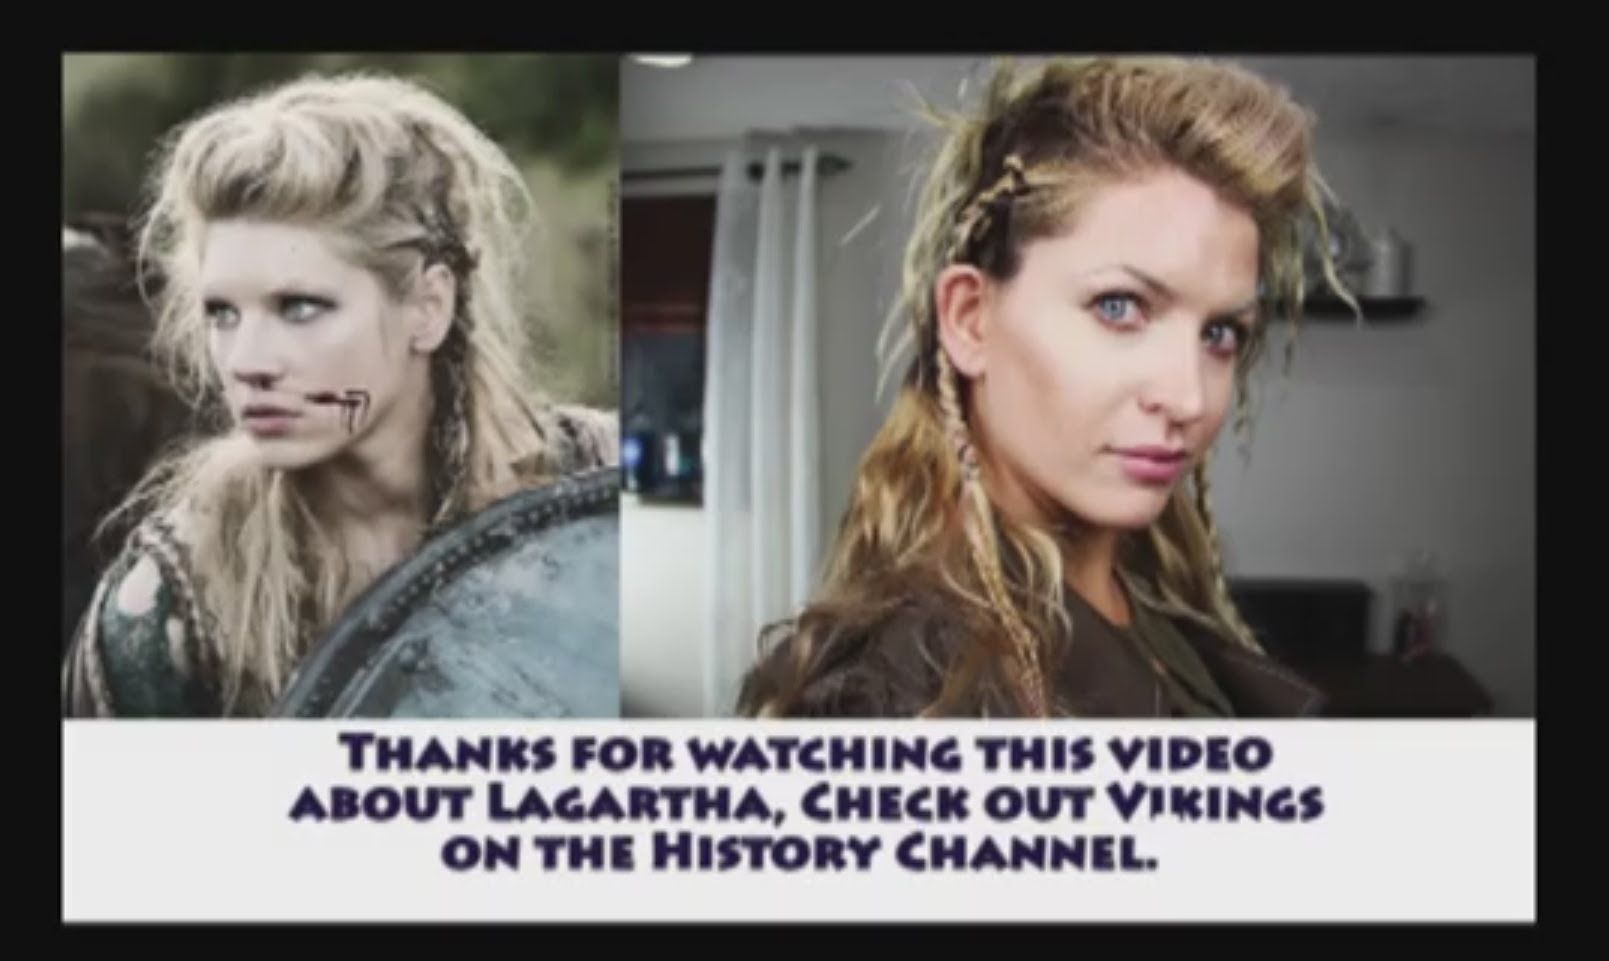 How to do Lagartha's hair in The Vikings. easy version with slept in braids before hand and a chain incorporated.